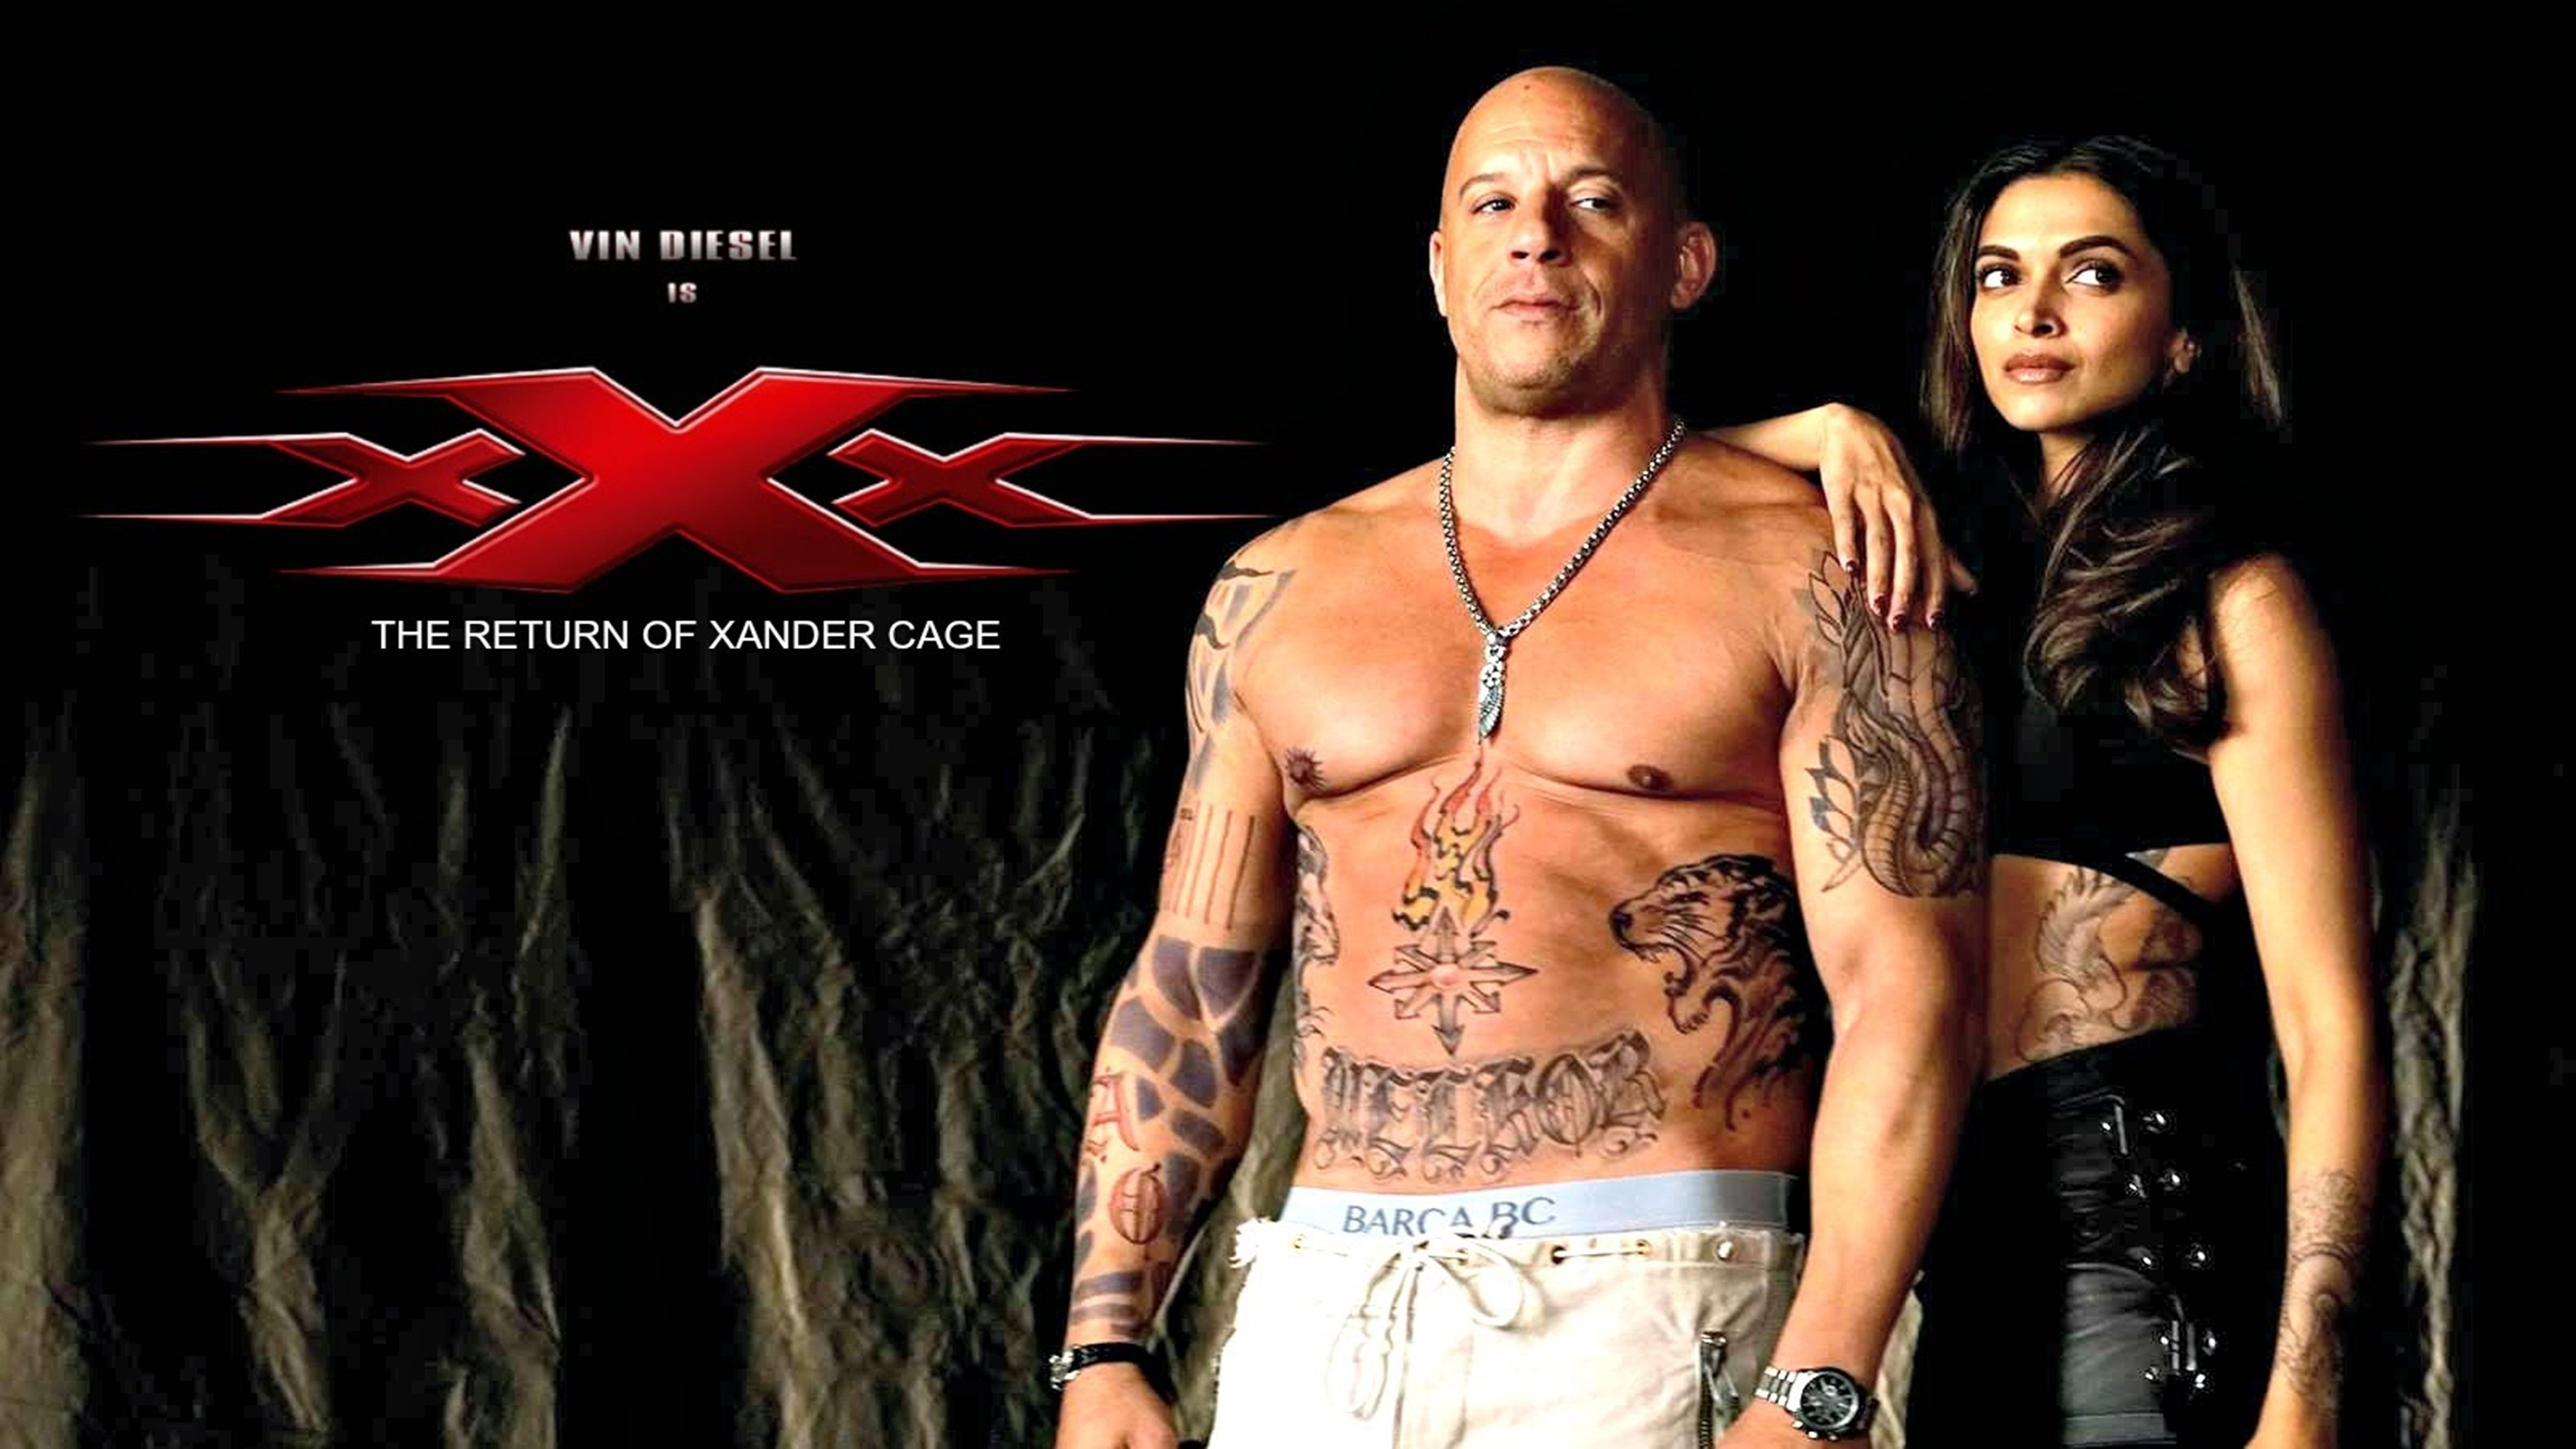 XXX: Return of Xander Cage vin diesel